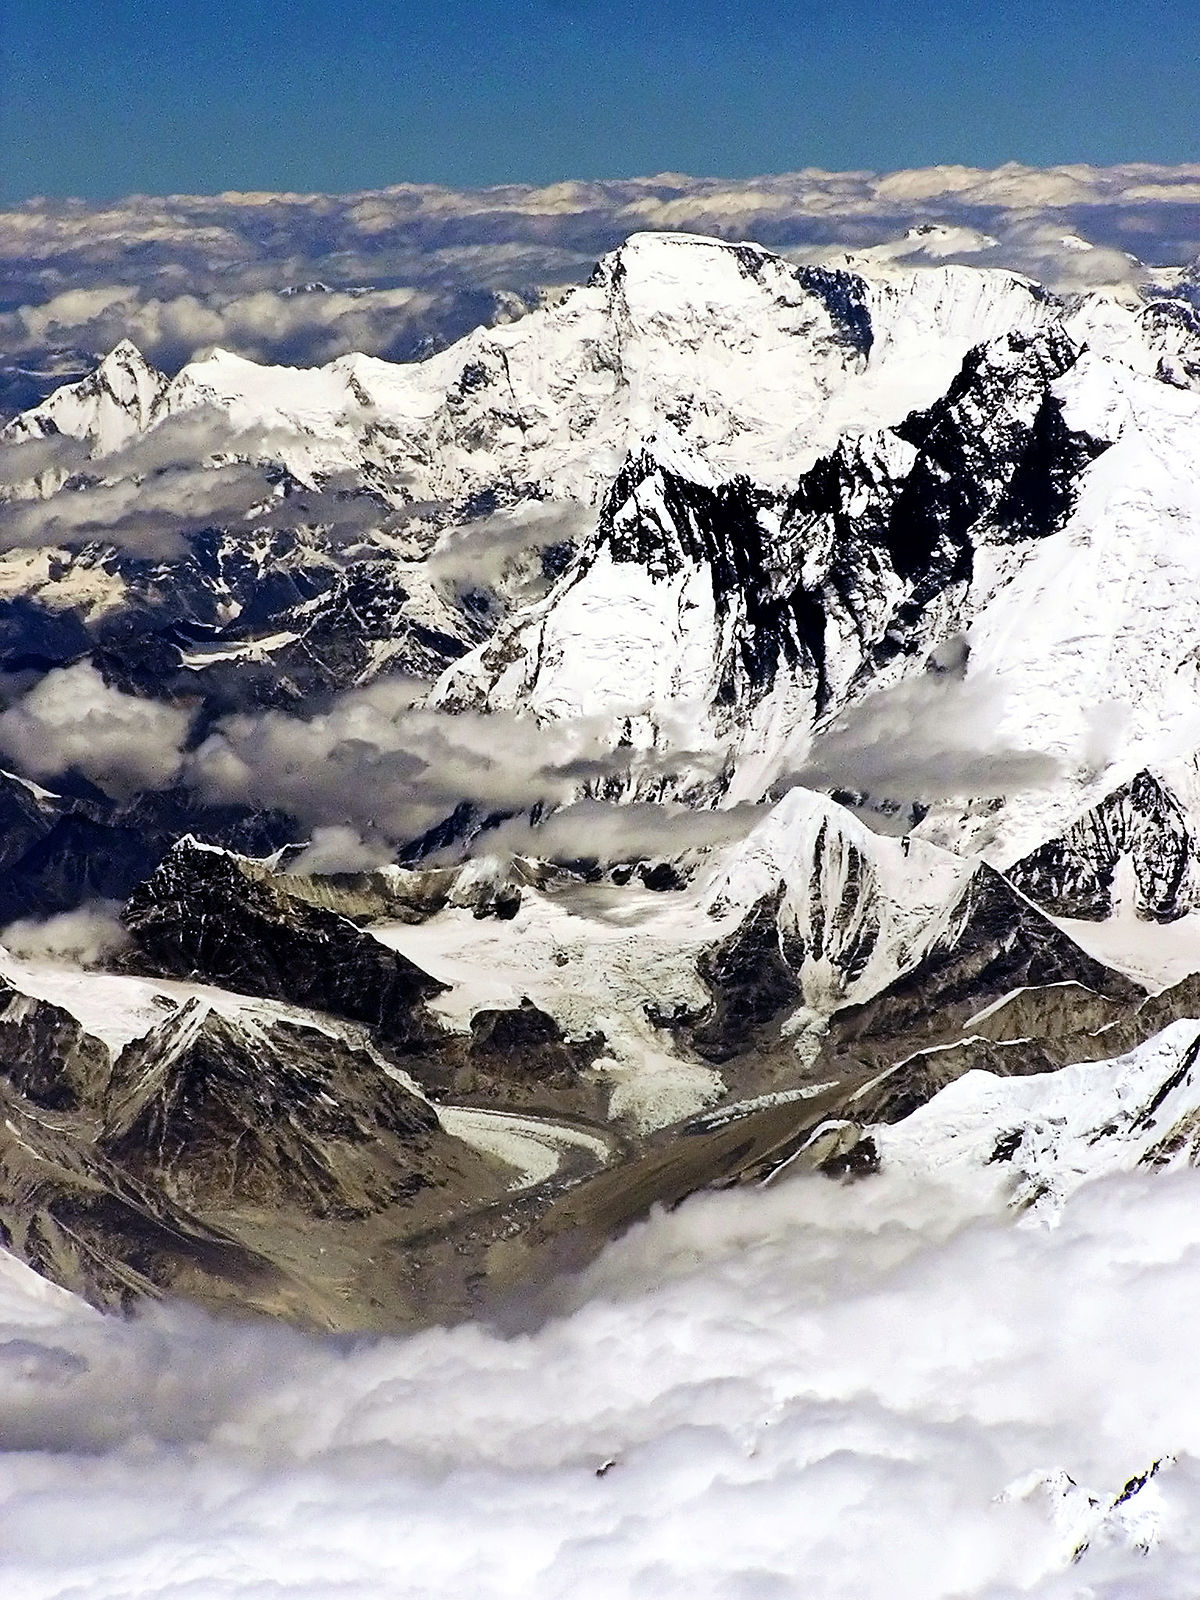 High-altitude adaptation in humans - Wikipedia